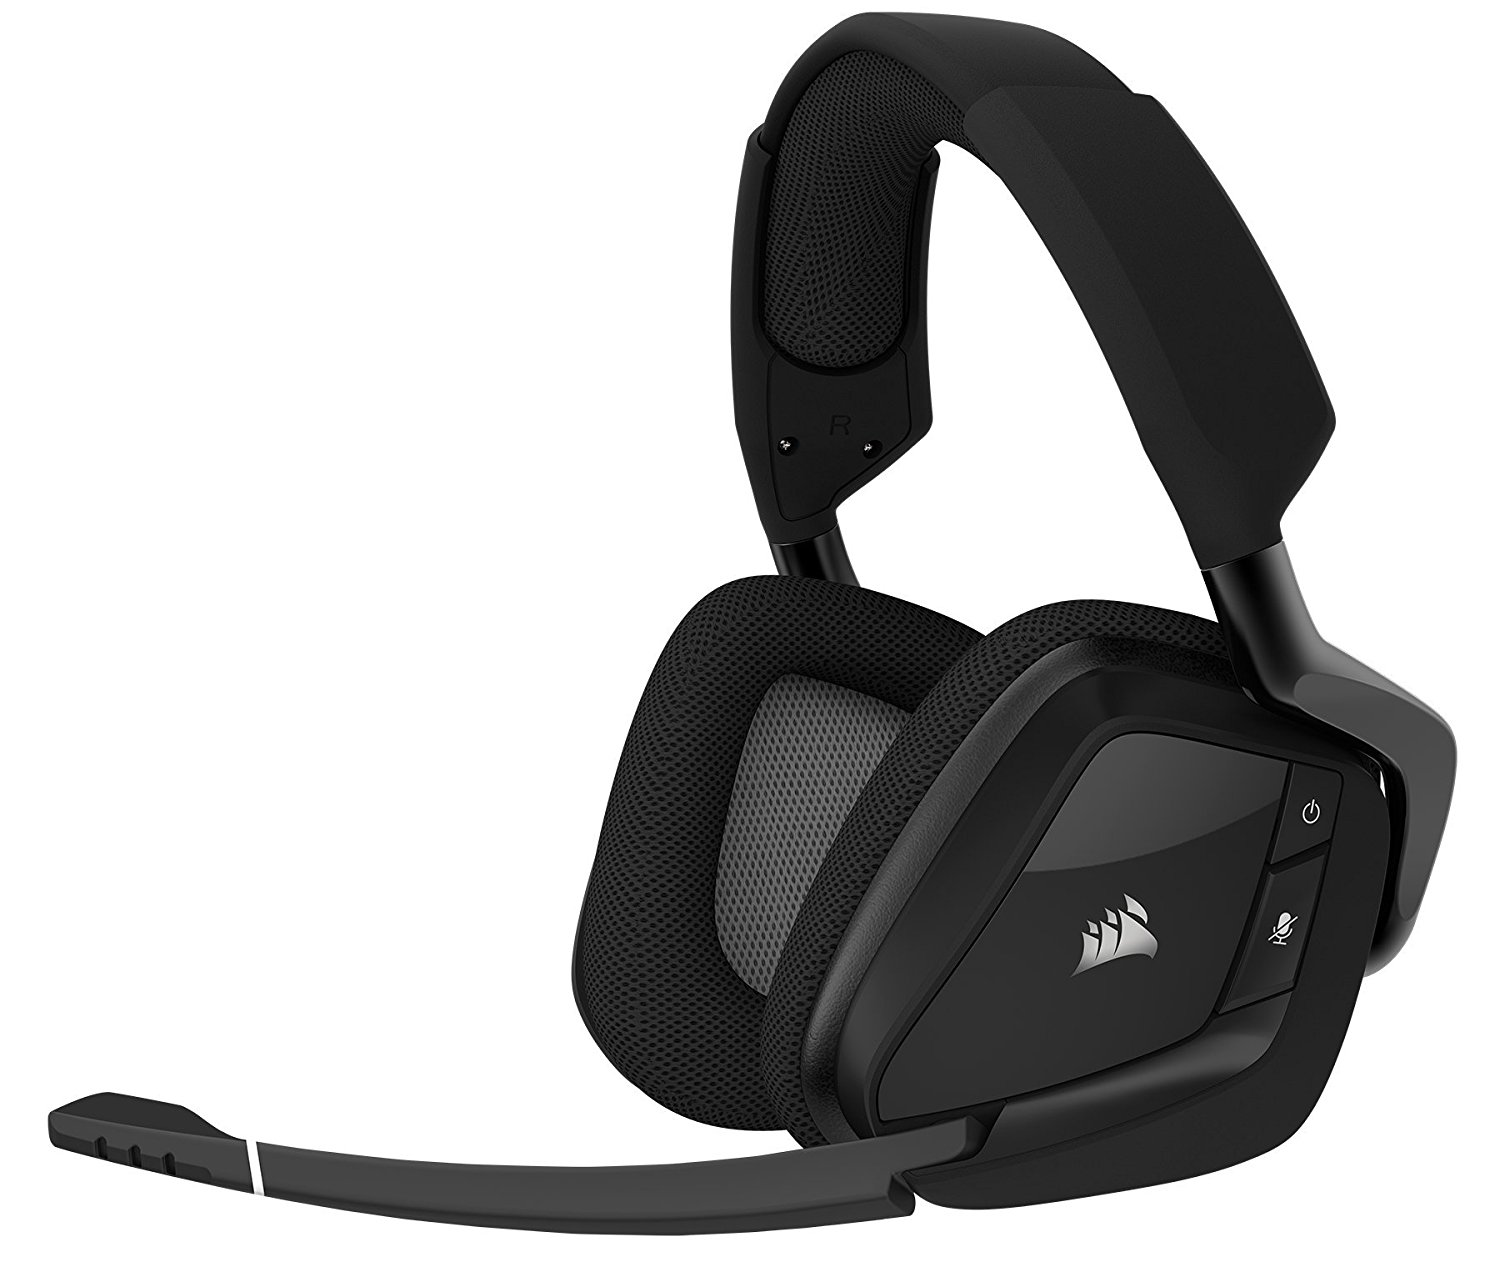 7. CORSAIR VOID PRO RGB Wireless Gaming Headset (Carbon)